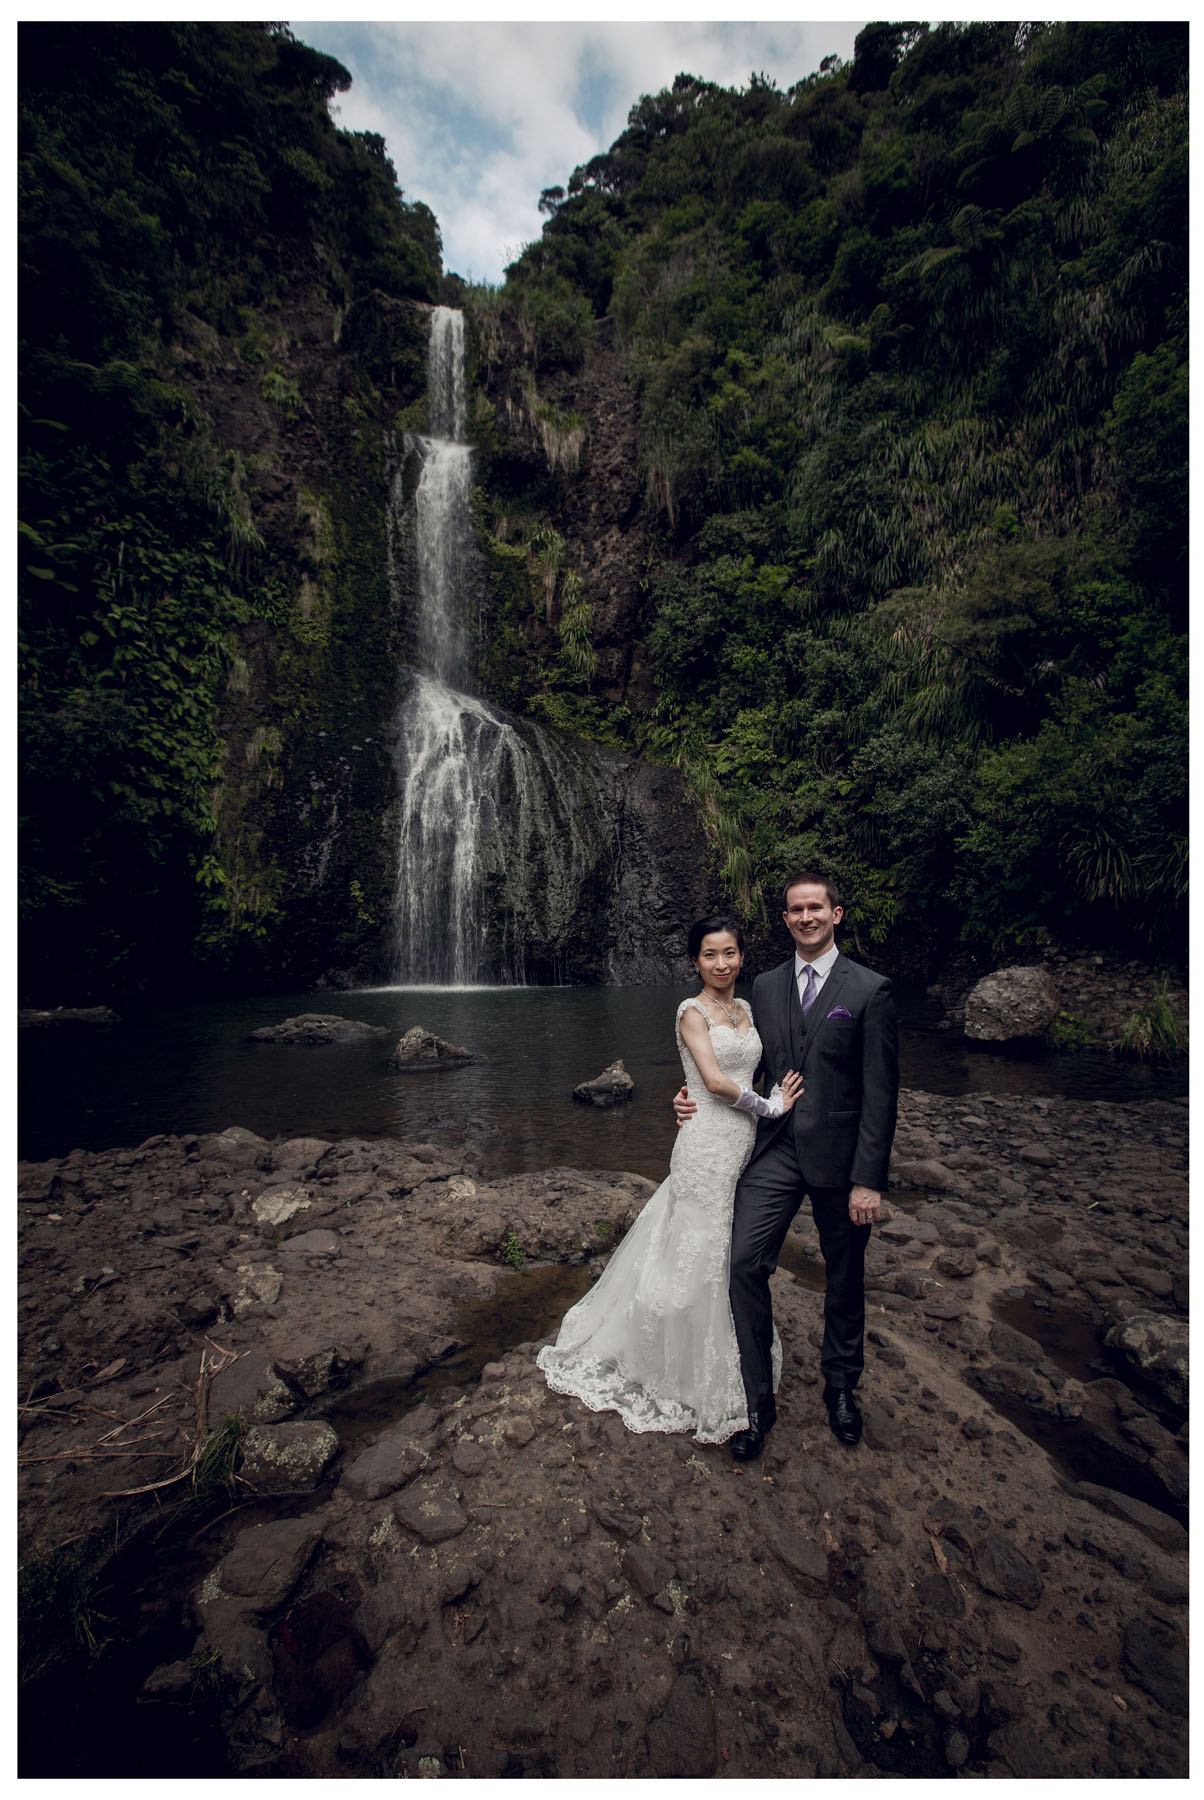 wedding photograph by Auckland wedding photographer Chris Loufte www.theweddingphotographer.co.nz Kitekite waterfall